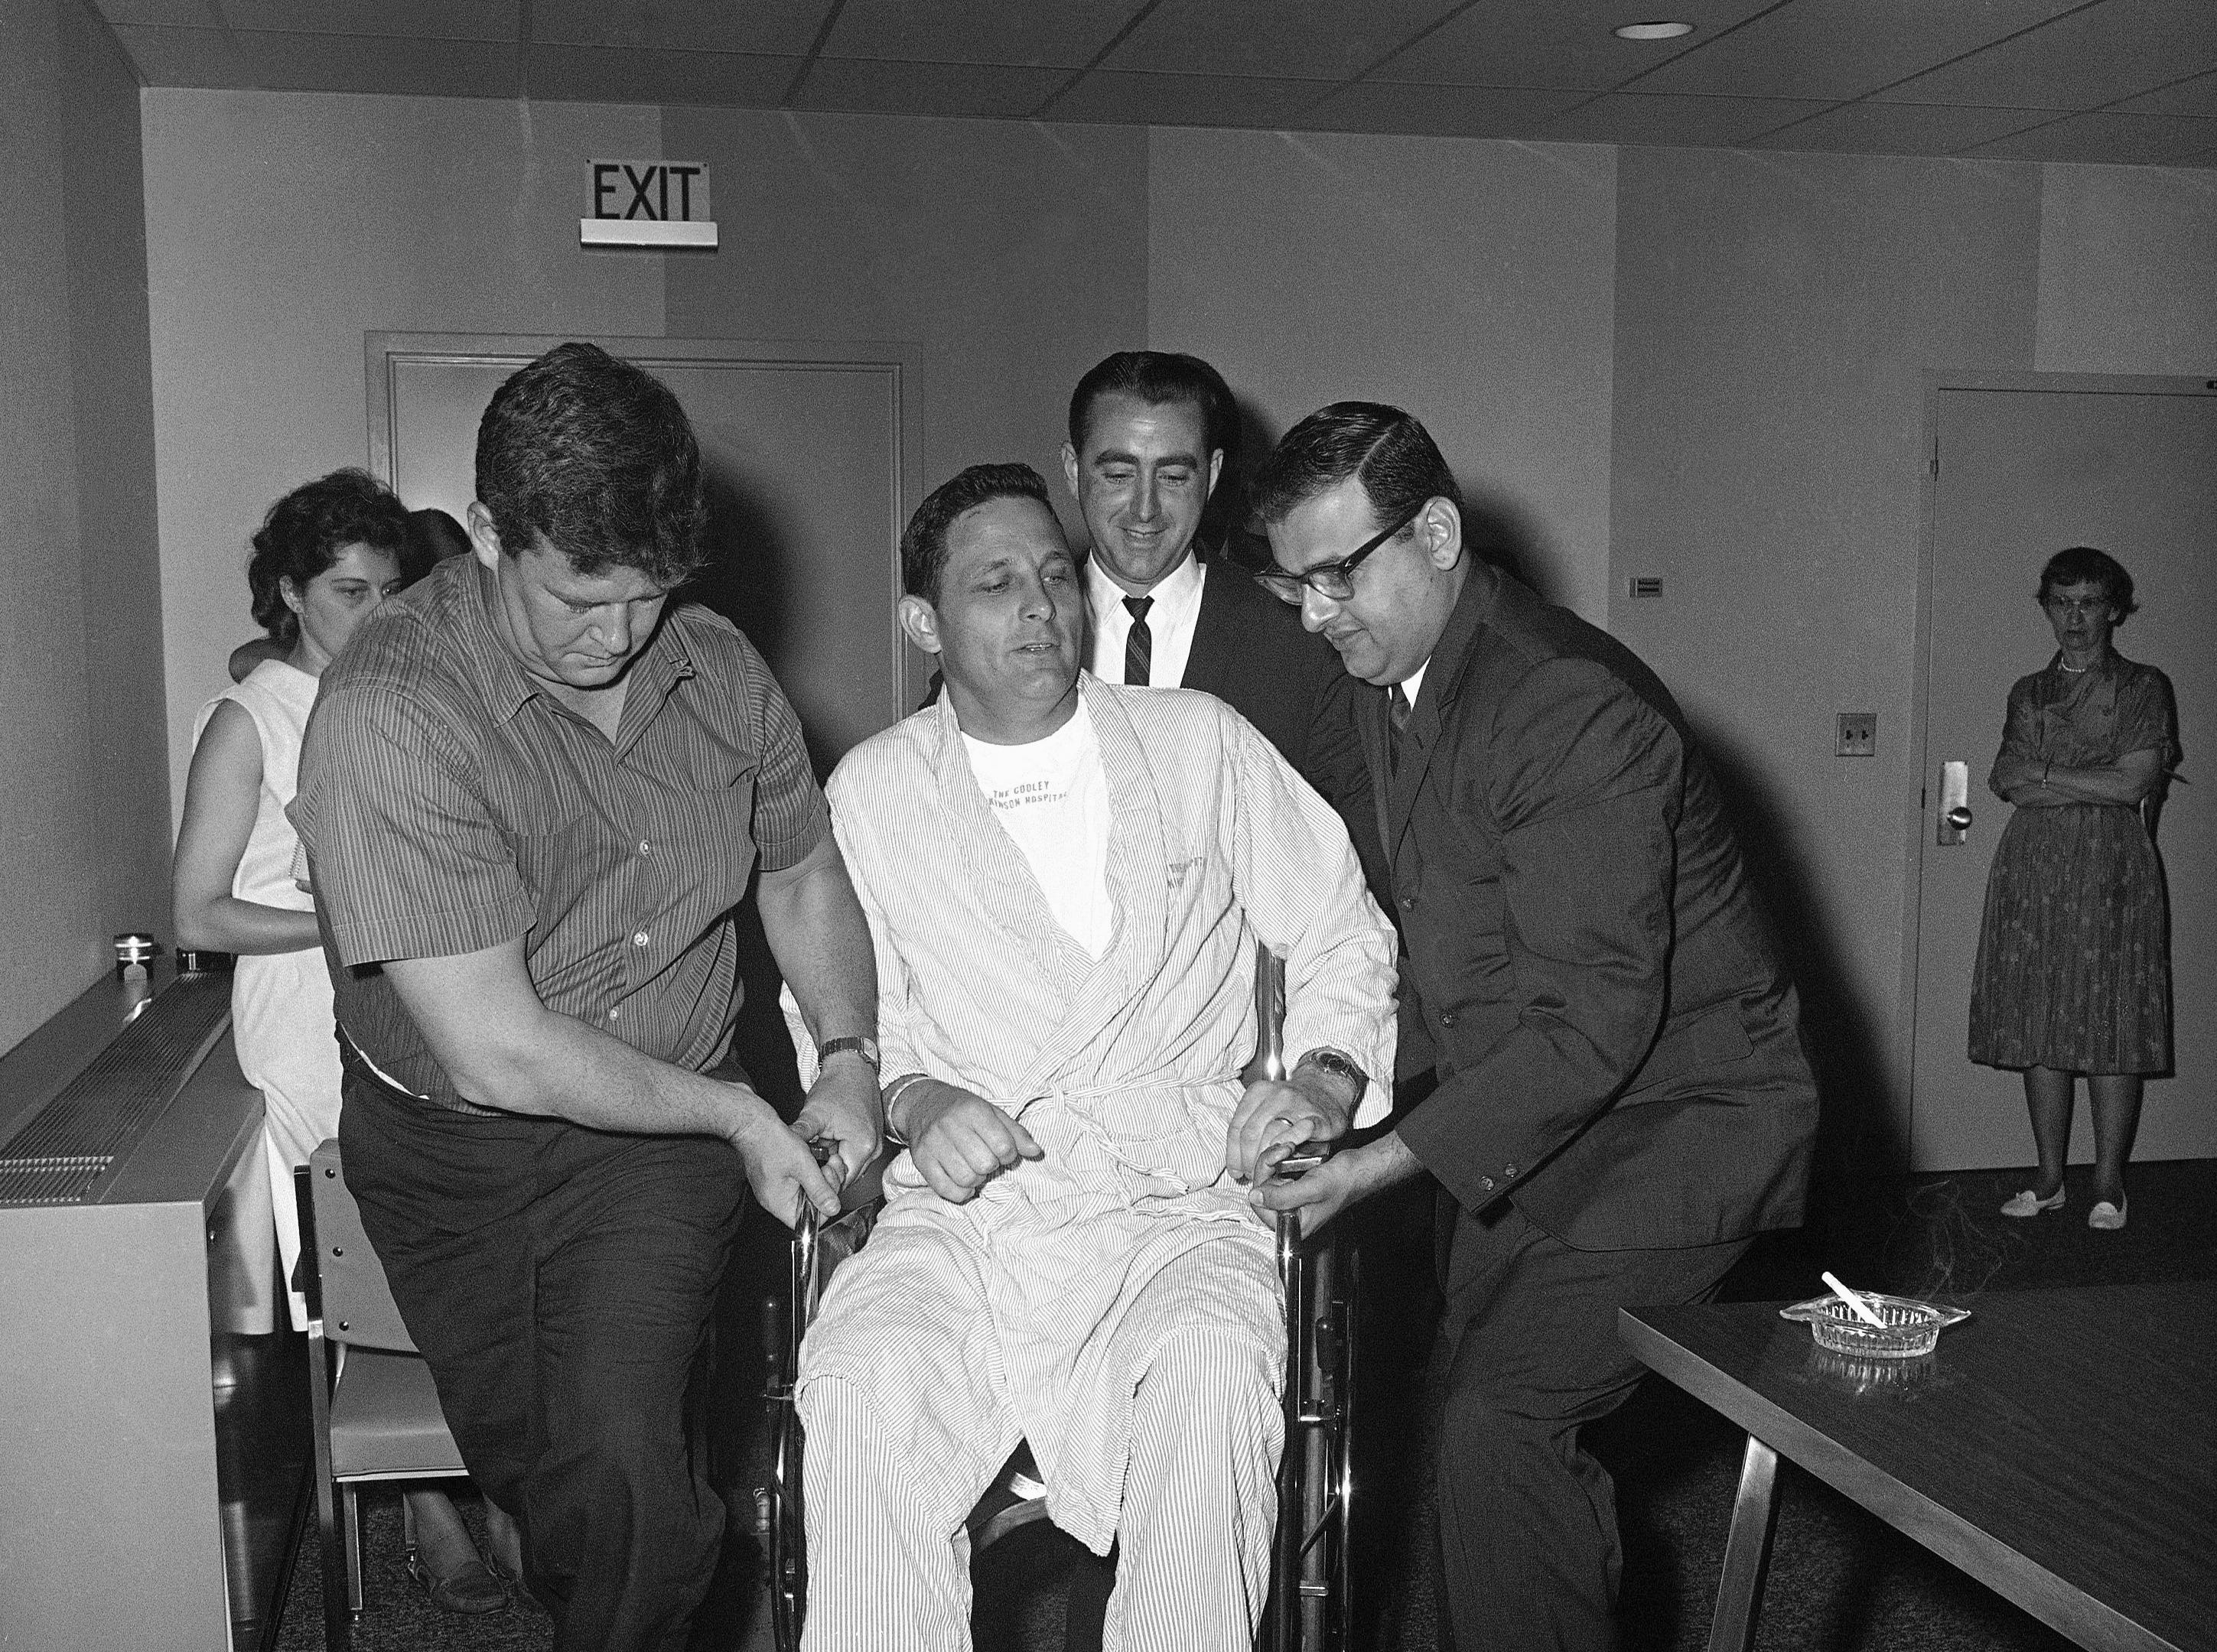 Senator Birch Bayh of Indiana, injured in airplane accident last week, is lifted in his wheelchair to stage of Cooley Dickinson Hospital to talk with press, June 24, 1964 in Northampton. Two persons were killed in the accident and Senator Edward Kennedy seriously injured. (AP Photo)